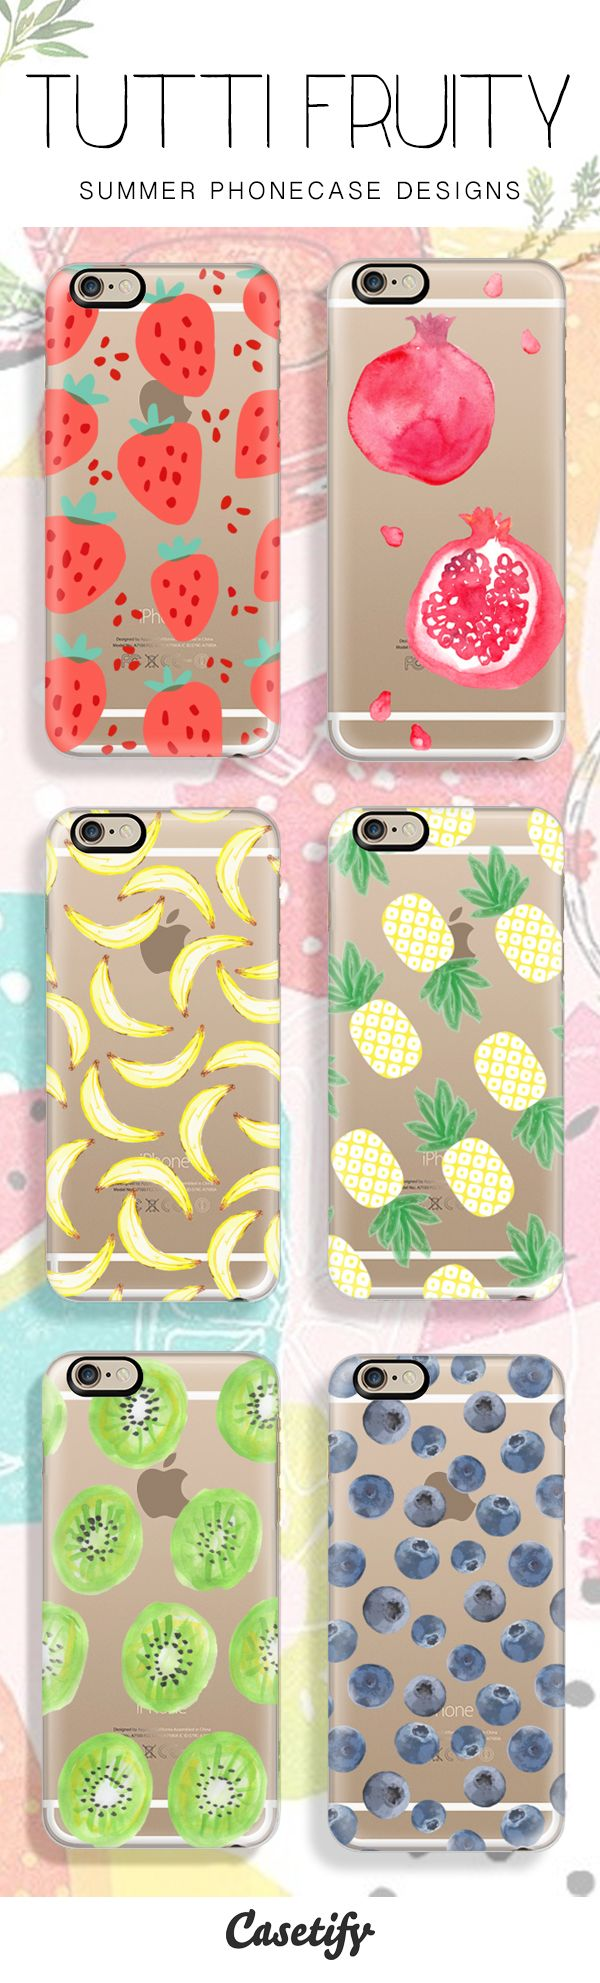 6 All time favourite summer fruit protective iPhone 6 phone cases, grab one if you like strawberries, banana, pineapple, kiwi fruit or bluberries phone cases! | Click through to see more fruity iphone phone case ideas >>> http://www.casetify.com/artworks/Get8n2KEIm | @casetify